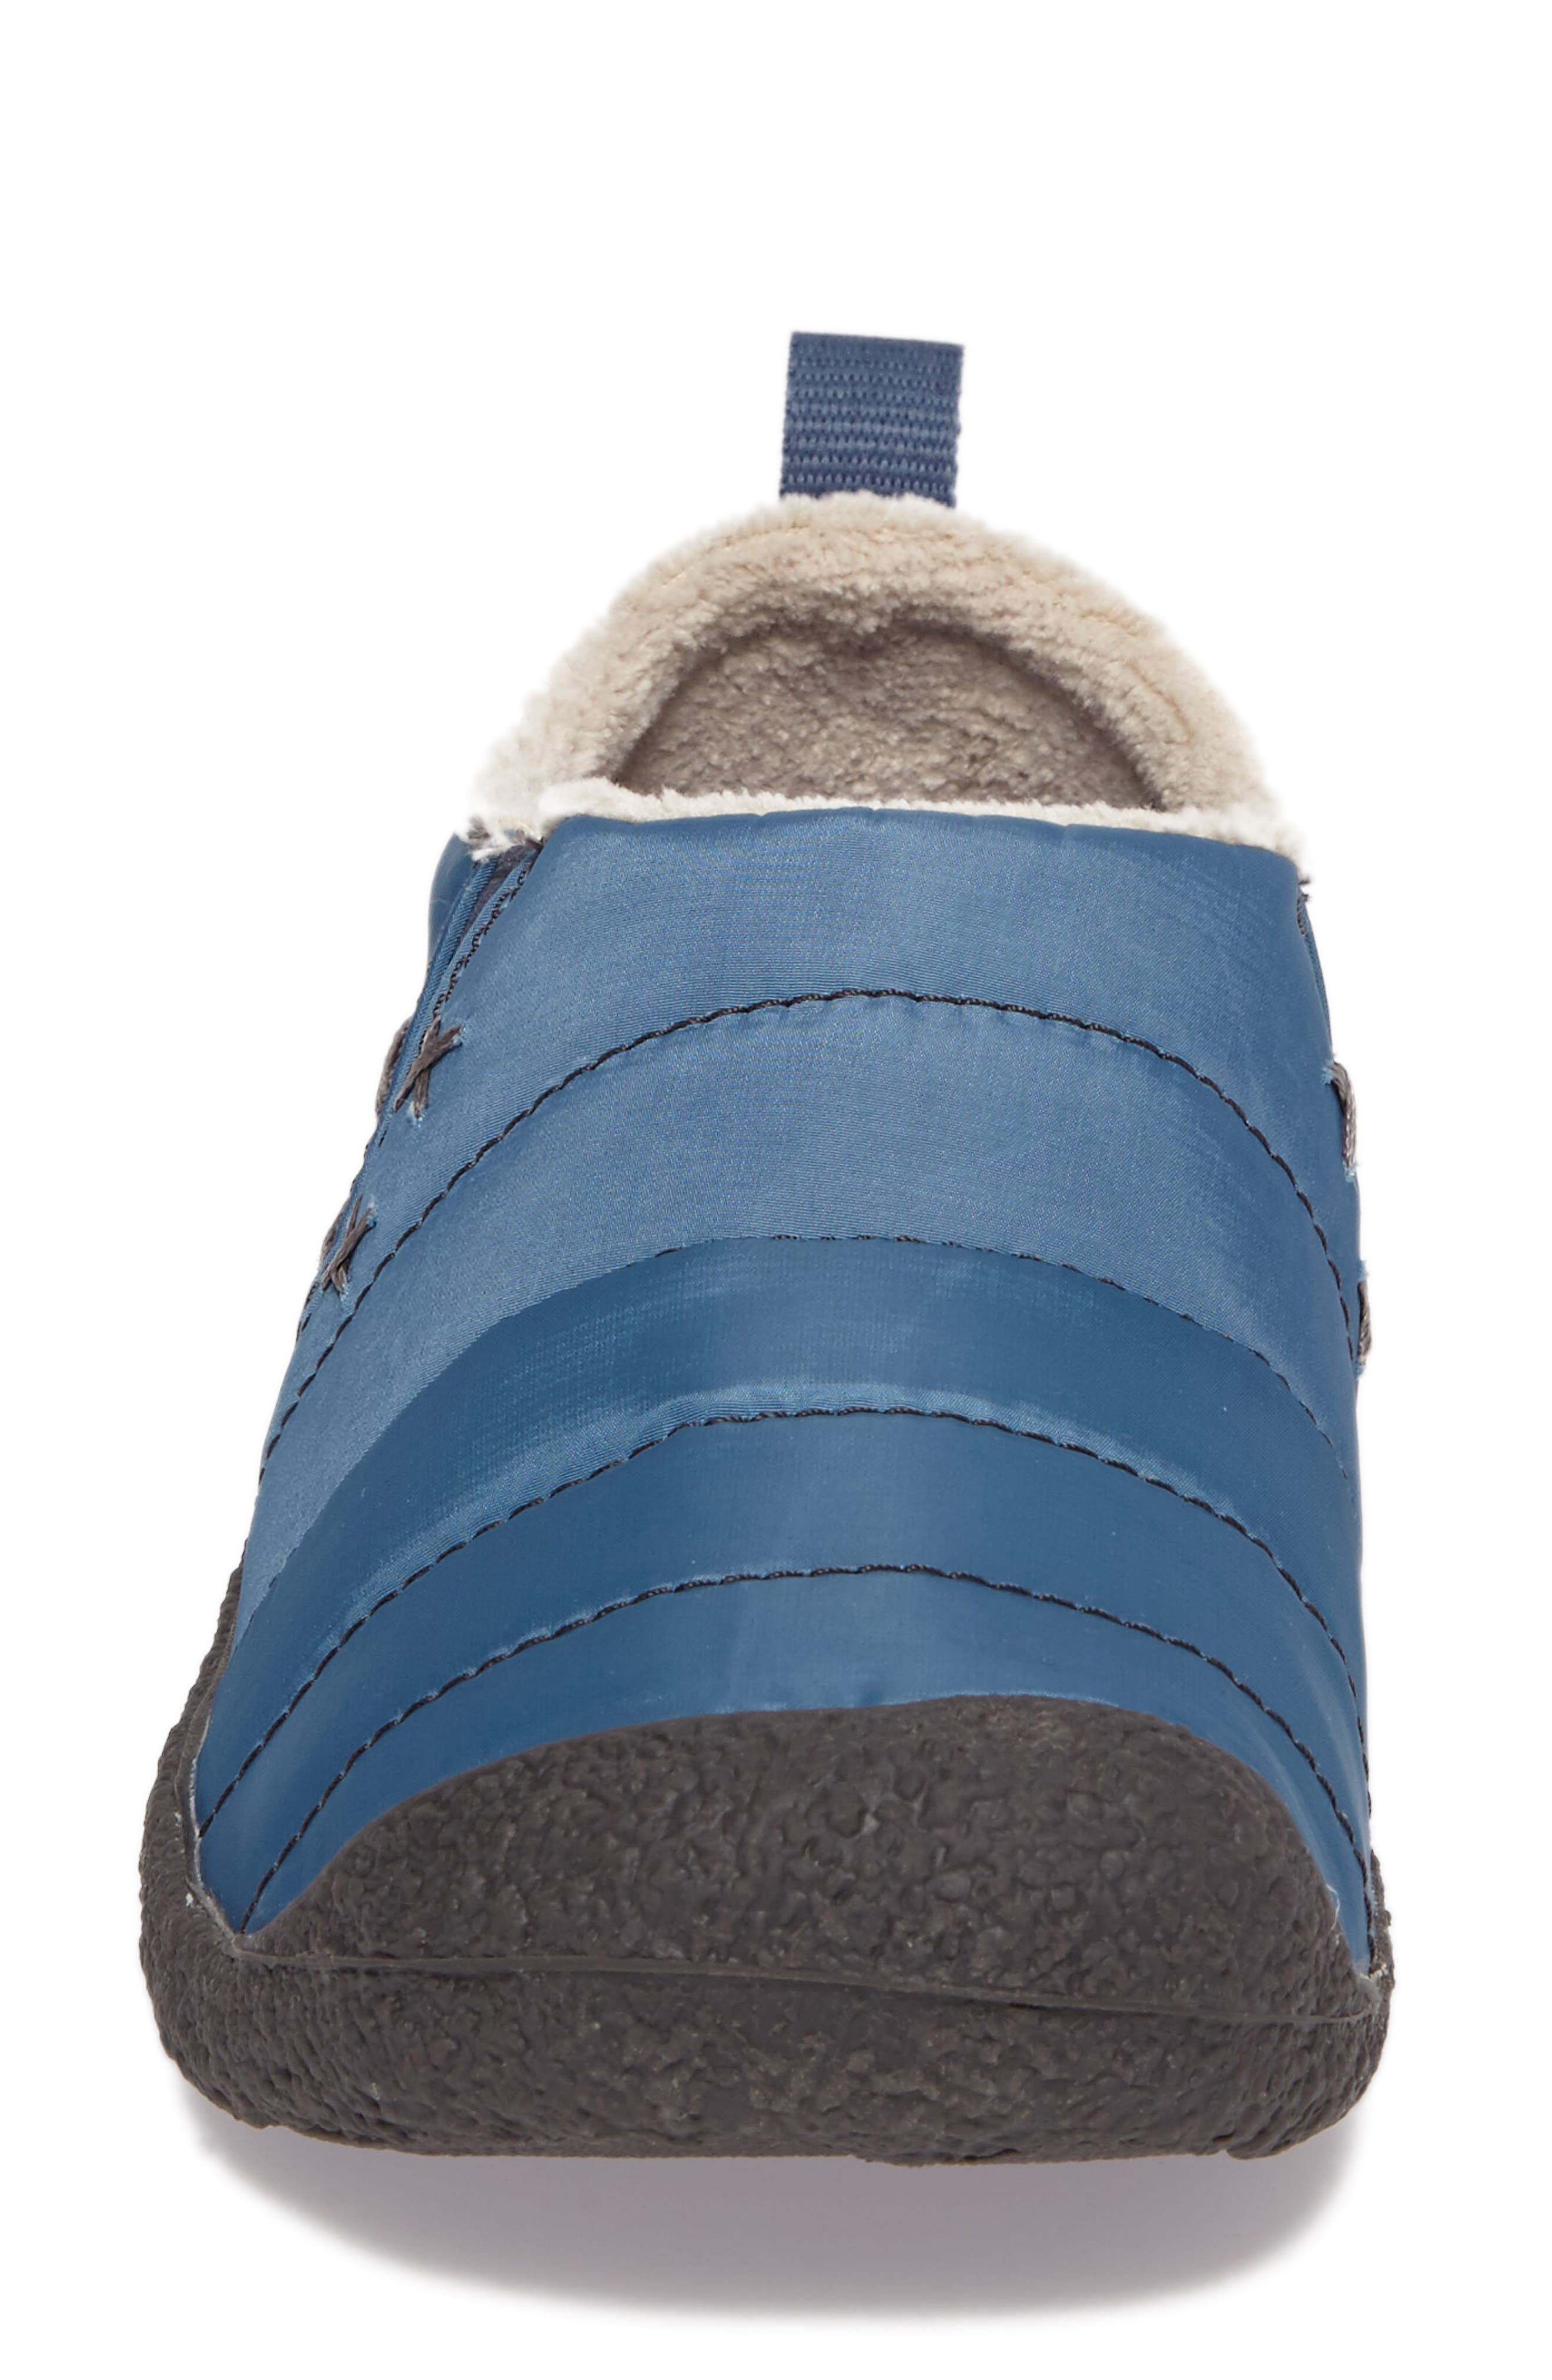 Howser II Water-Resistant Round Toe Clog,                             Alternate thumbnail 4, color,                             400